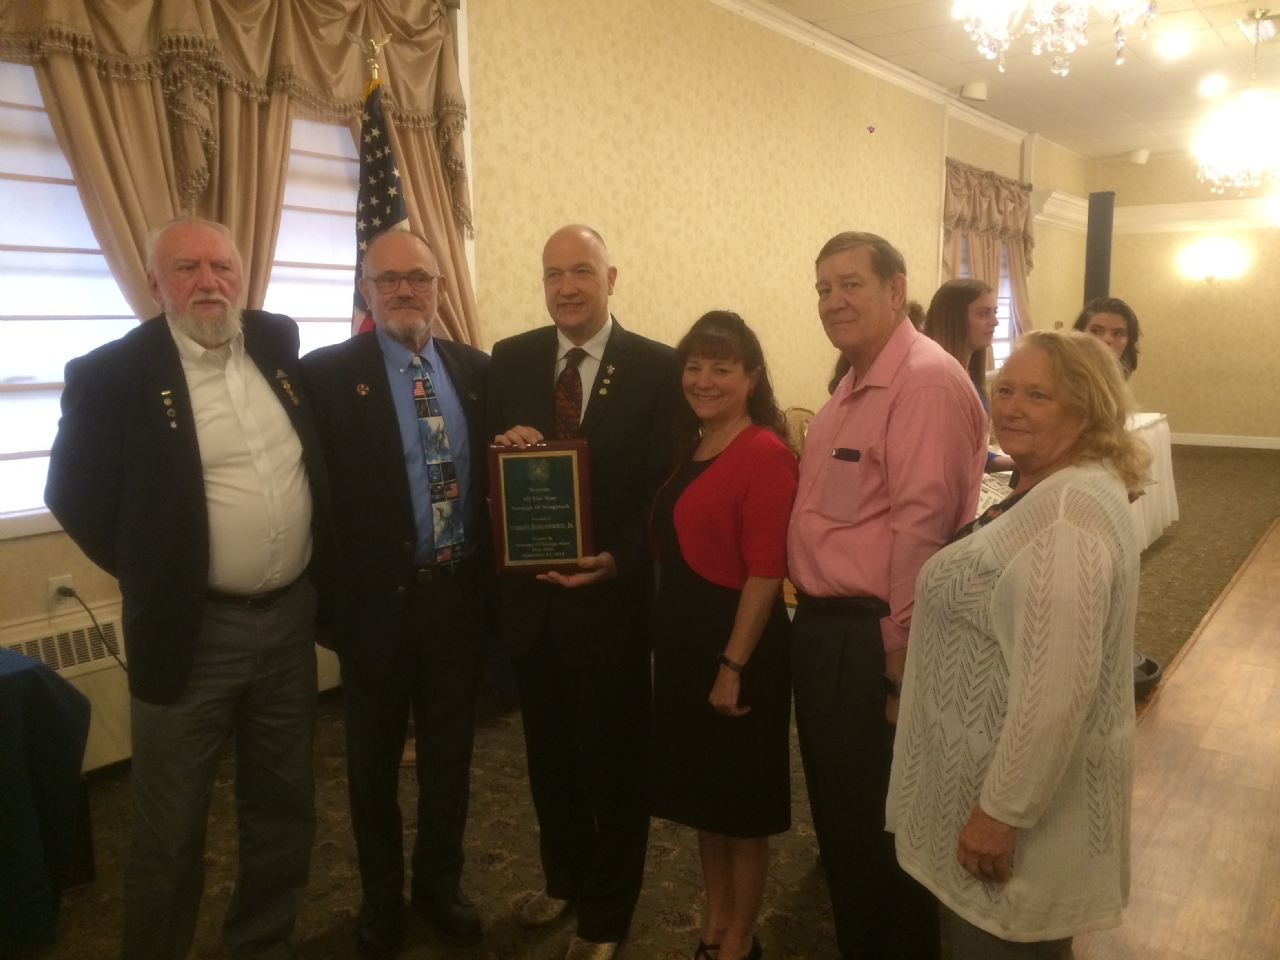 Mel, Ruth, Ann ,Stan , Jim and Skip, 9/23/2018 award ceremony at the Chrystal room Honoring Stan as Veteran of the year, put on by post 1964 Naugatuck